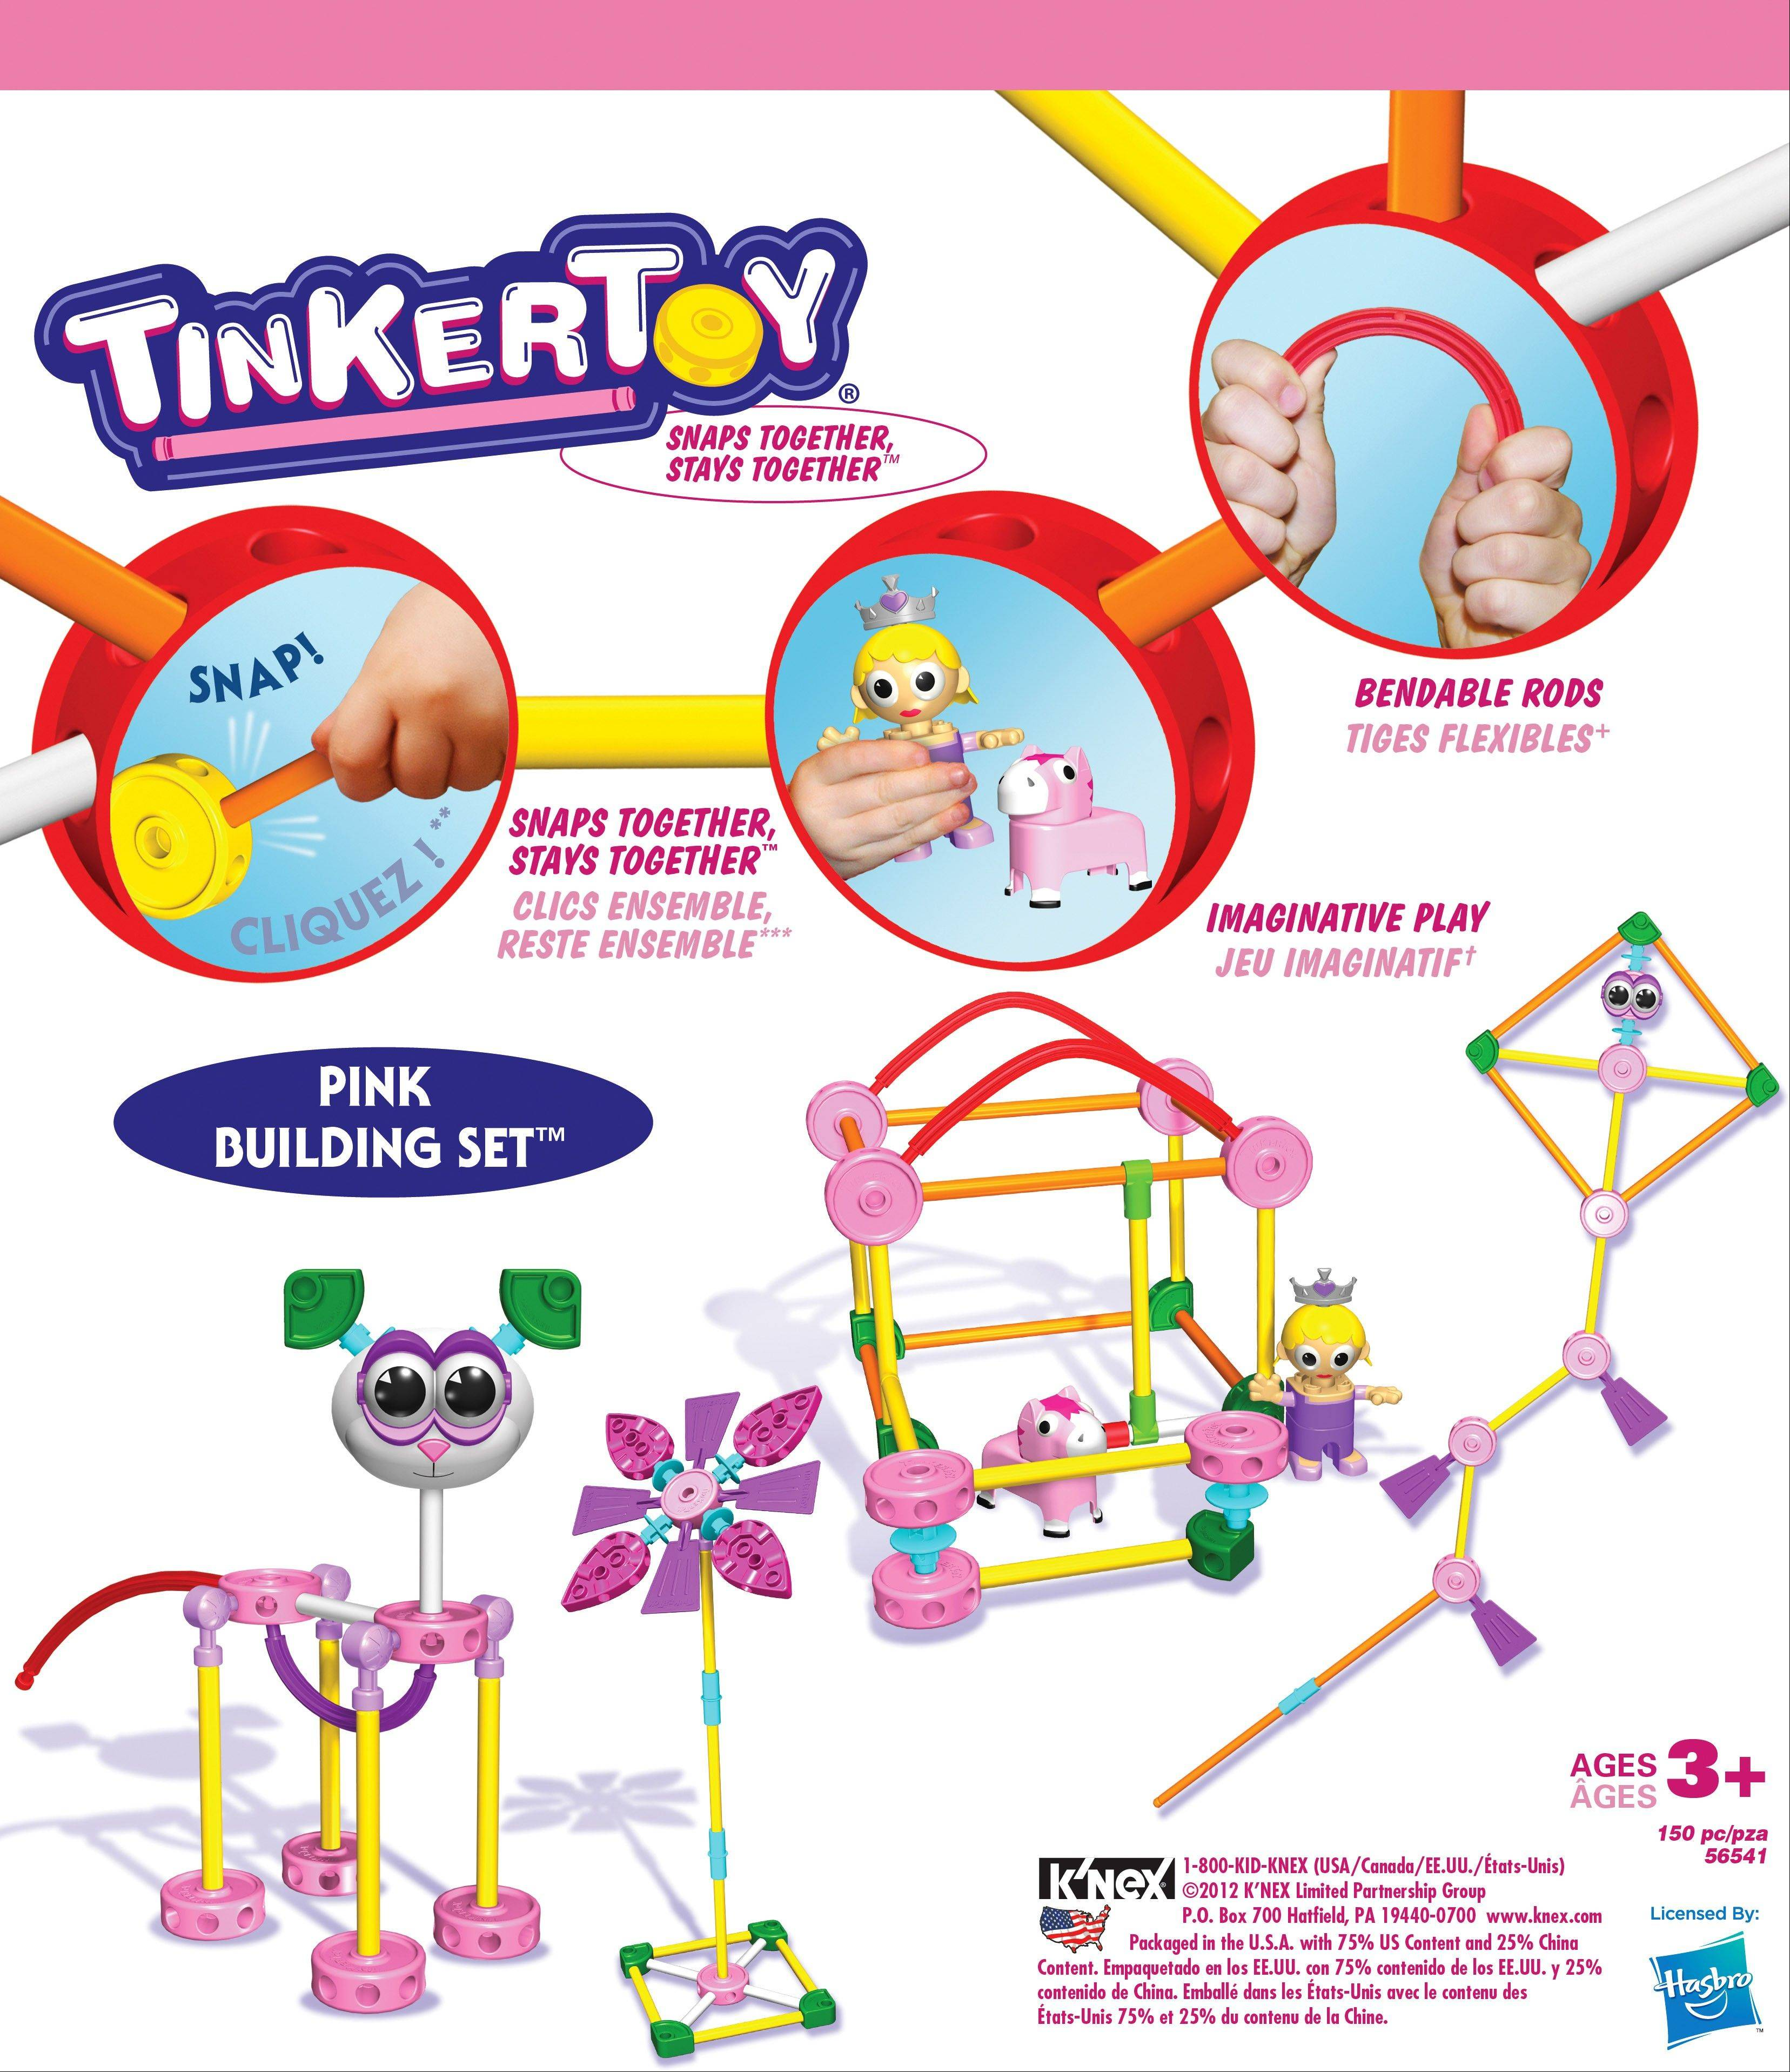 Retro toys like Tinkertoys have seen a resurgence and are now made of high density plastic, with pink versions just for girl builders (www.knex.com).